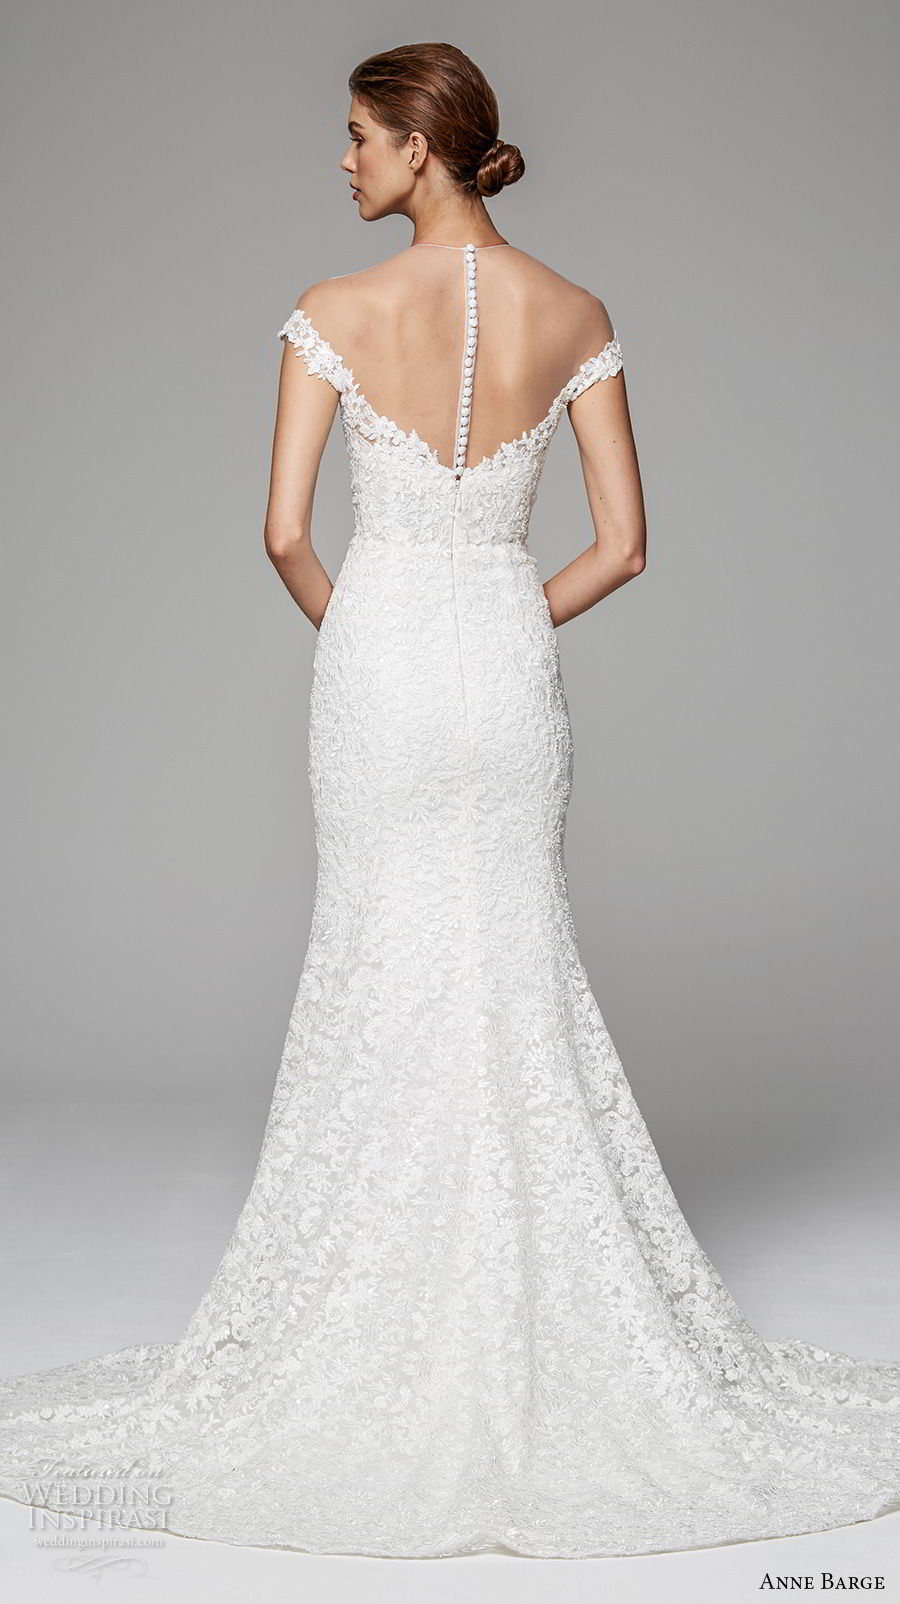 anne barge fall 2018 bridal cap sleeves illusion jewel sweetheart neckline full embellishment romantic fit and flare wedding dress scoop back short train (6) bv